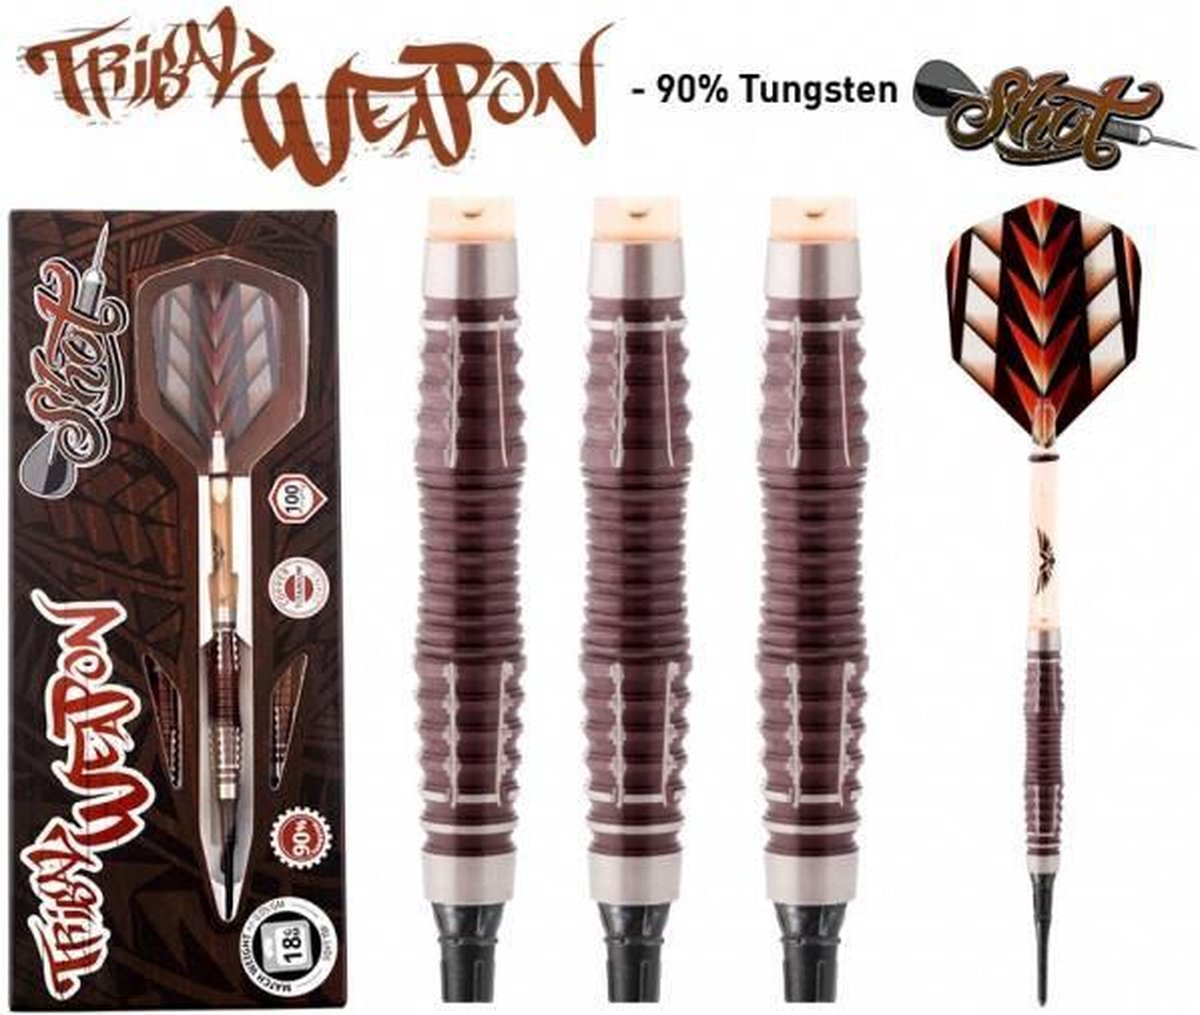 Shot! Tribal Weapon 3 Centre Weight 90% Soft Tip - 18 Gram